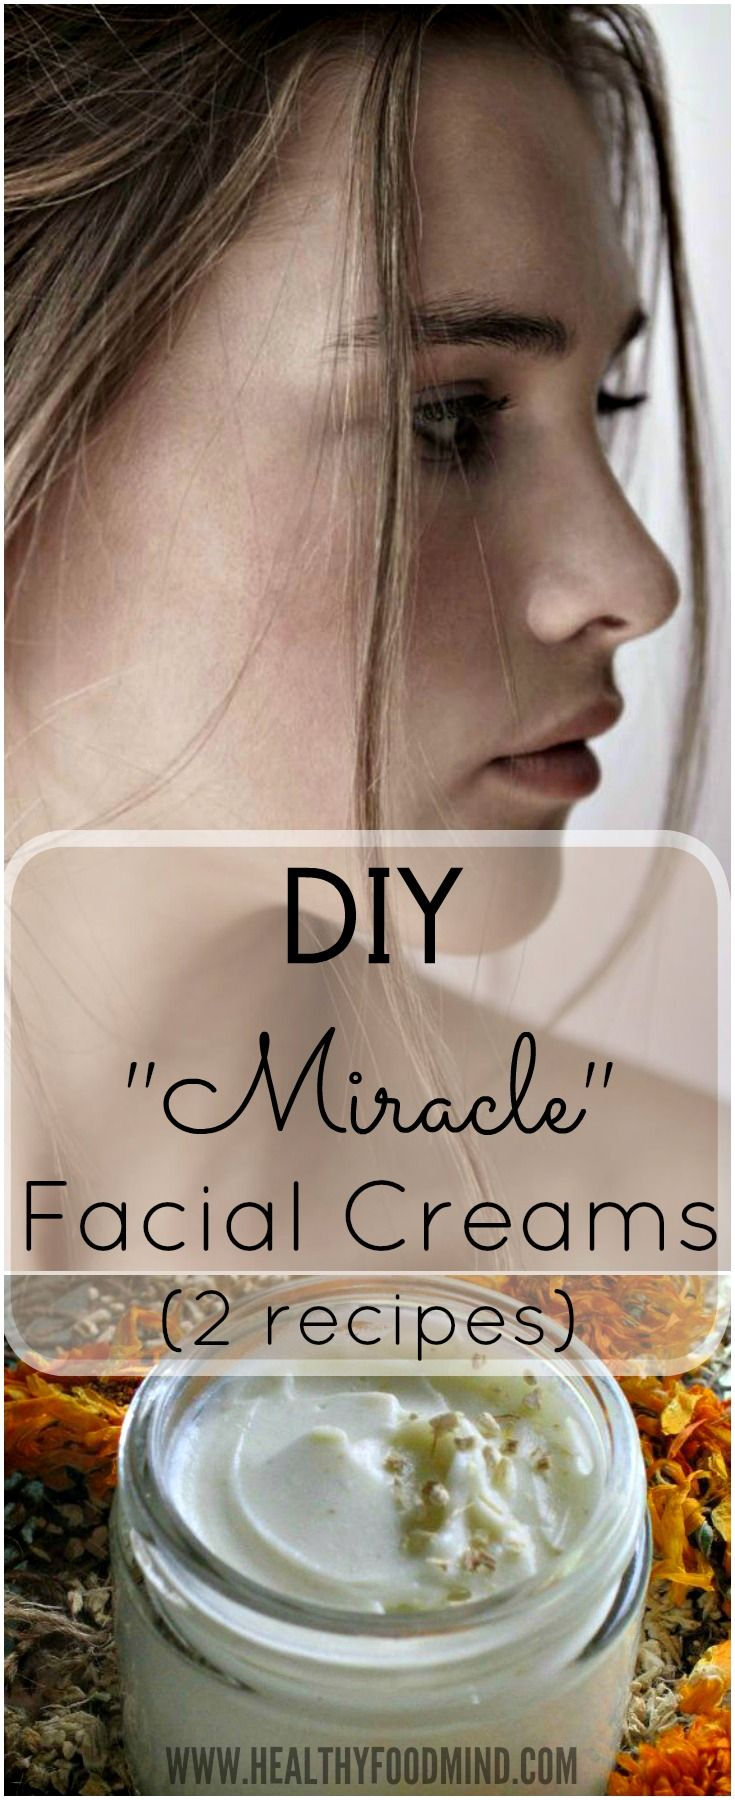 If you've decided to use only natural products for skin care, like me, then you must try these recipes for homemade facial cremes.